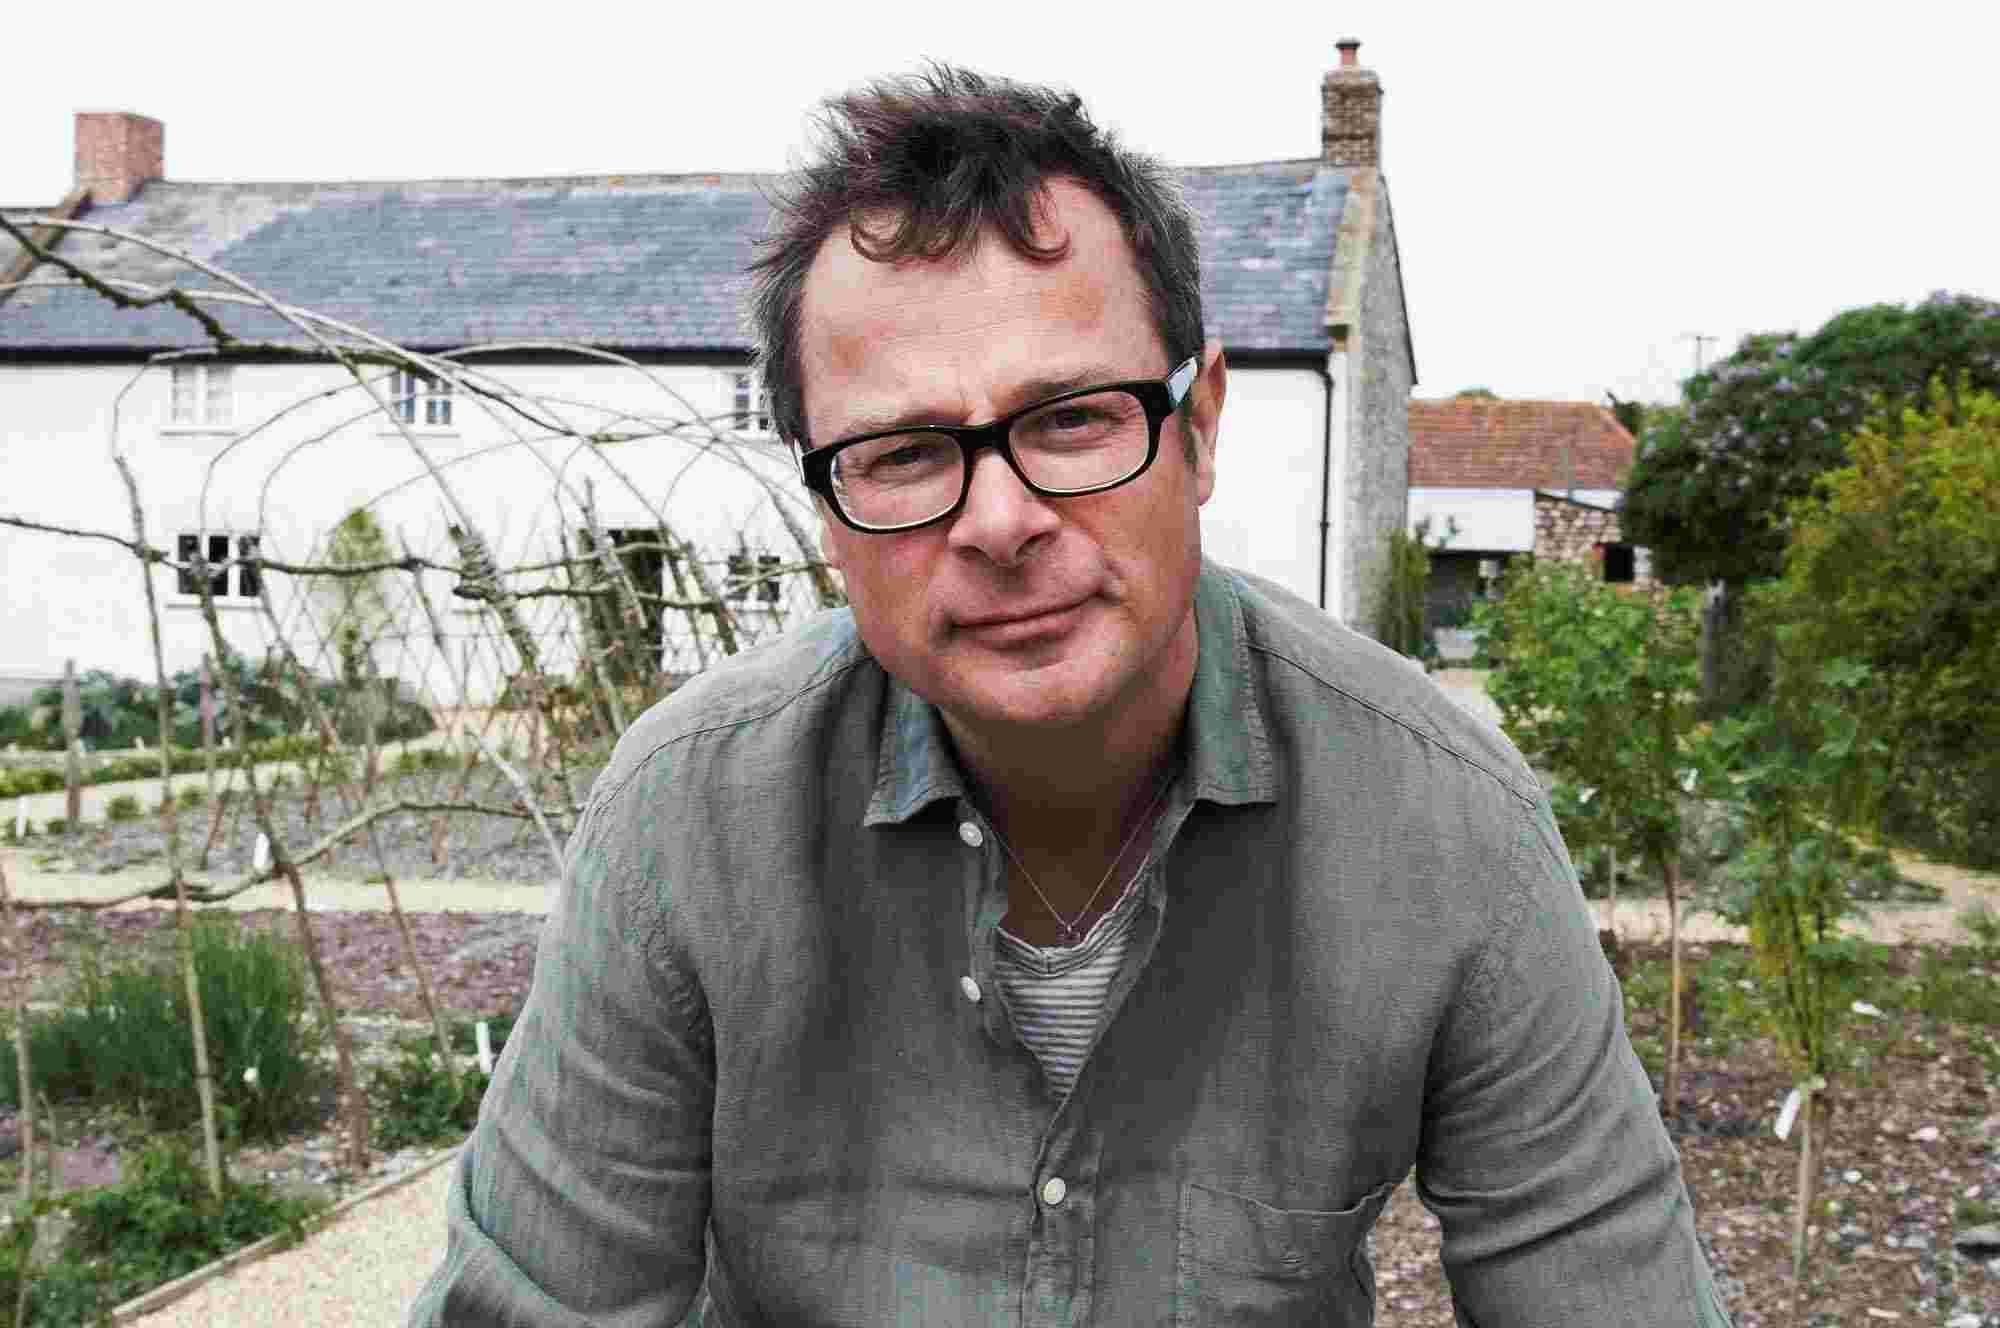 The star of River Cottage says he wants to make his Winchester eatery sustainable.